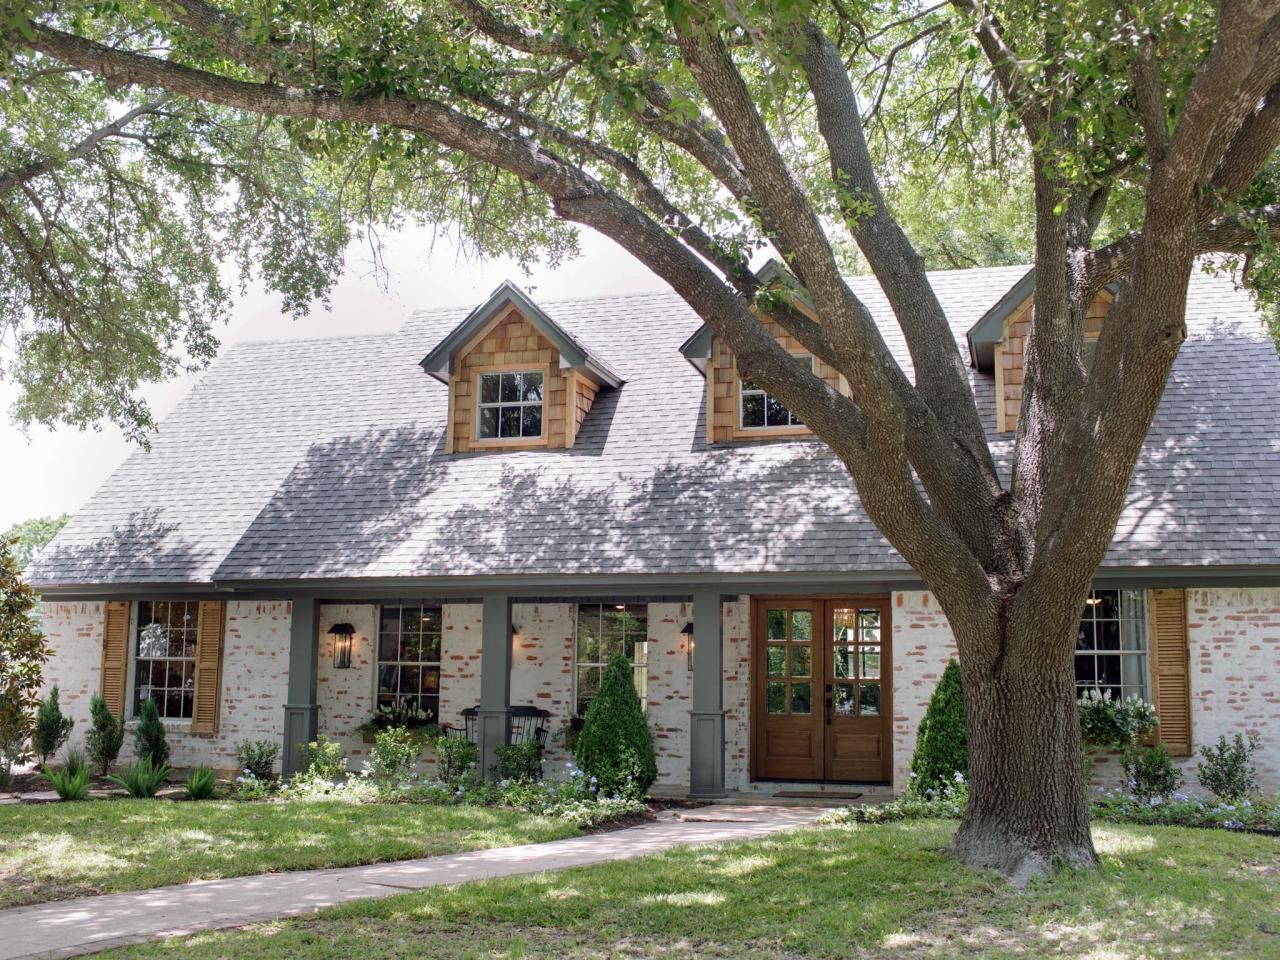 Find the best of from hgtv fixer upper sara jones home - How to whitewash brick house exterior ...